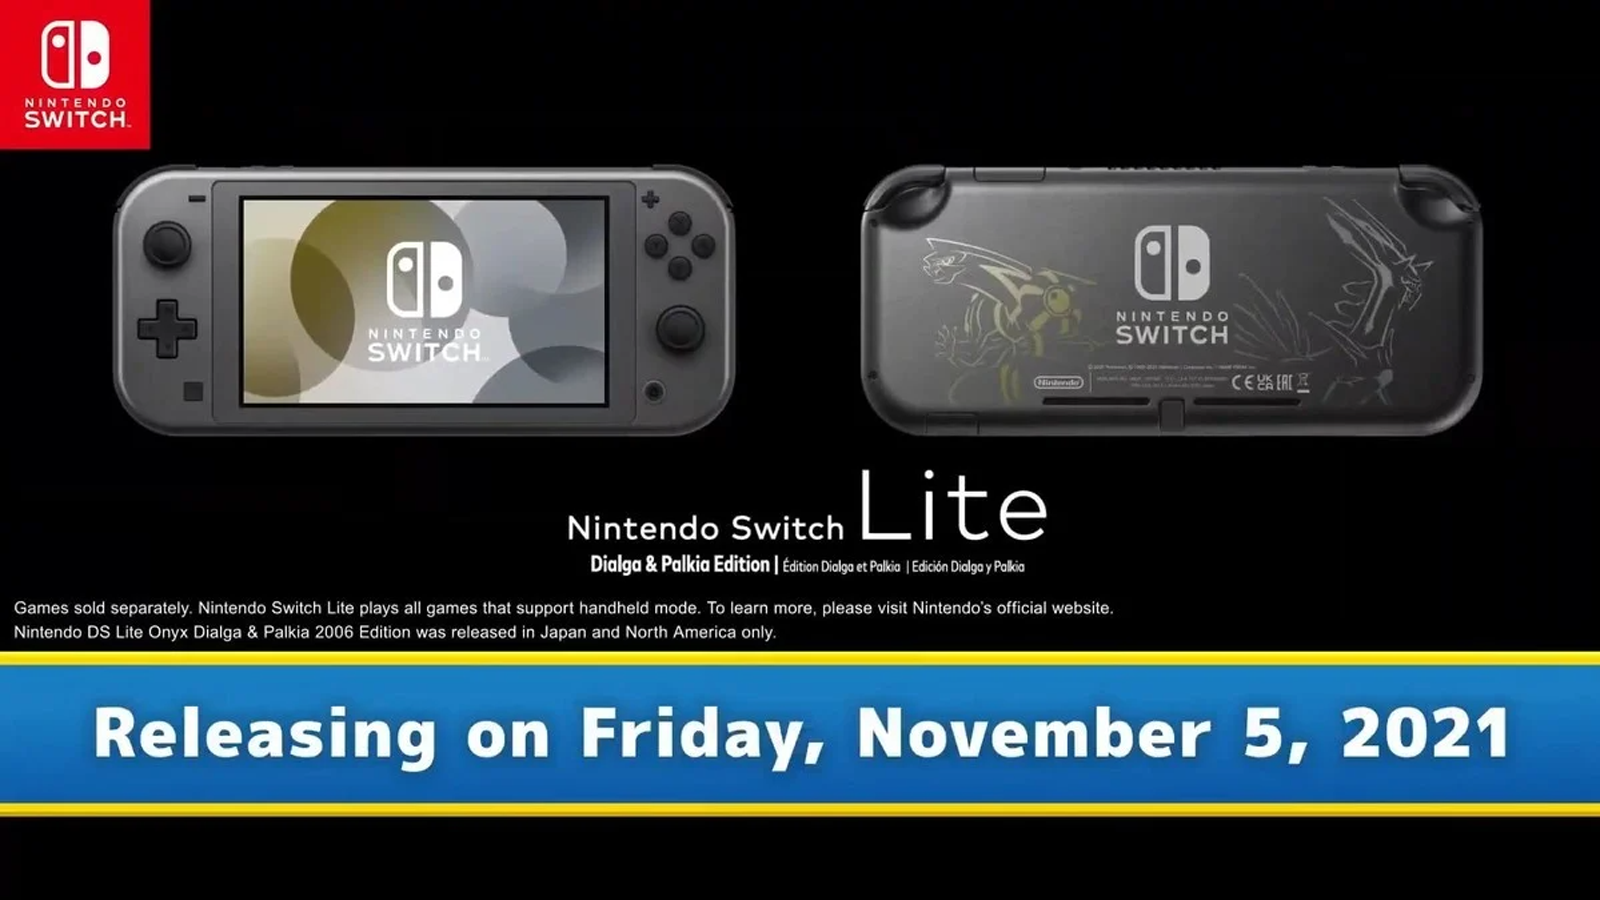 Nintendo Switch Lite special edition with dialga and palkia etched on back